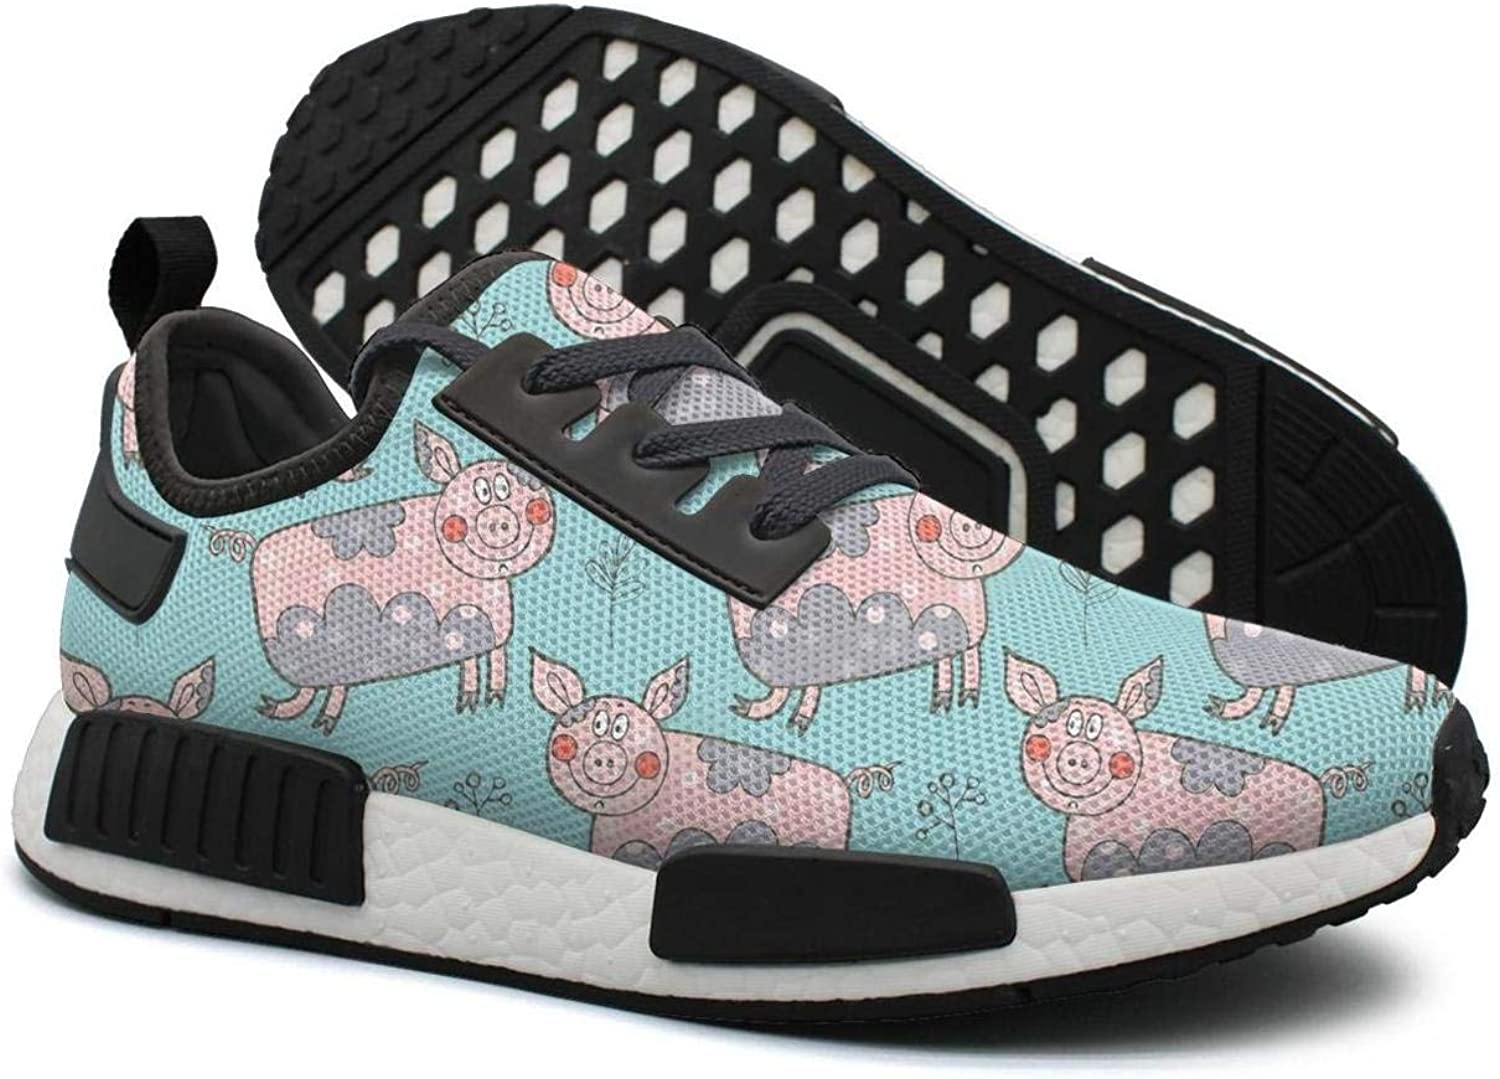 Hand Drawn Beautiful Flower Pig in A Village Women's Jogger Lightweight Tennis Sneakers Gym Outdoor Walking shoes